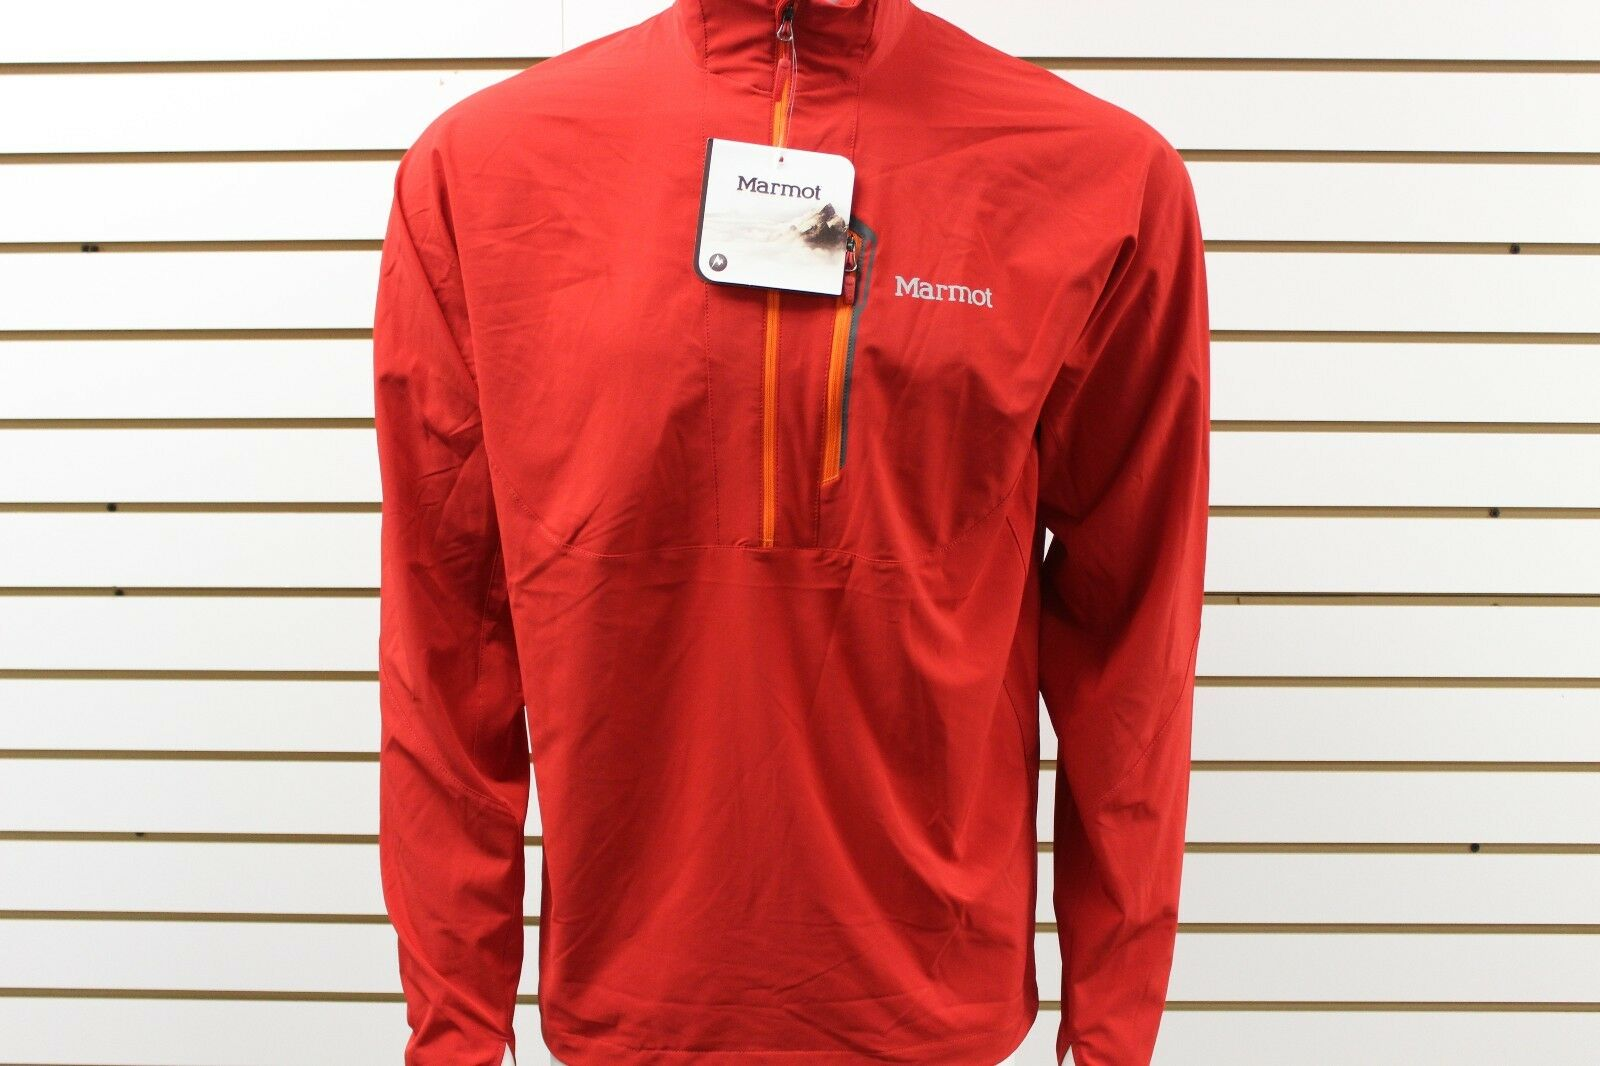 Men Marmot M3 Softshell Stretch Light 1 2 Zip New Team Red 50780 New With Tag